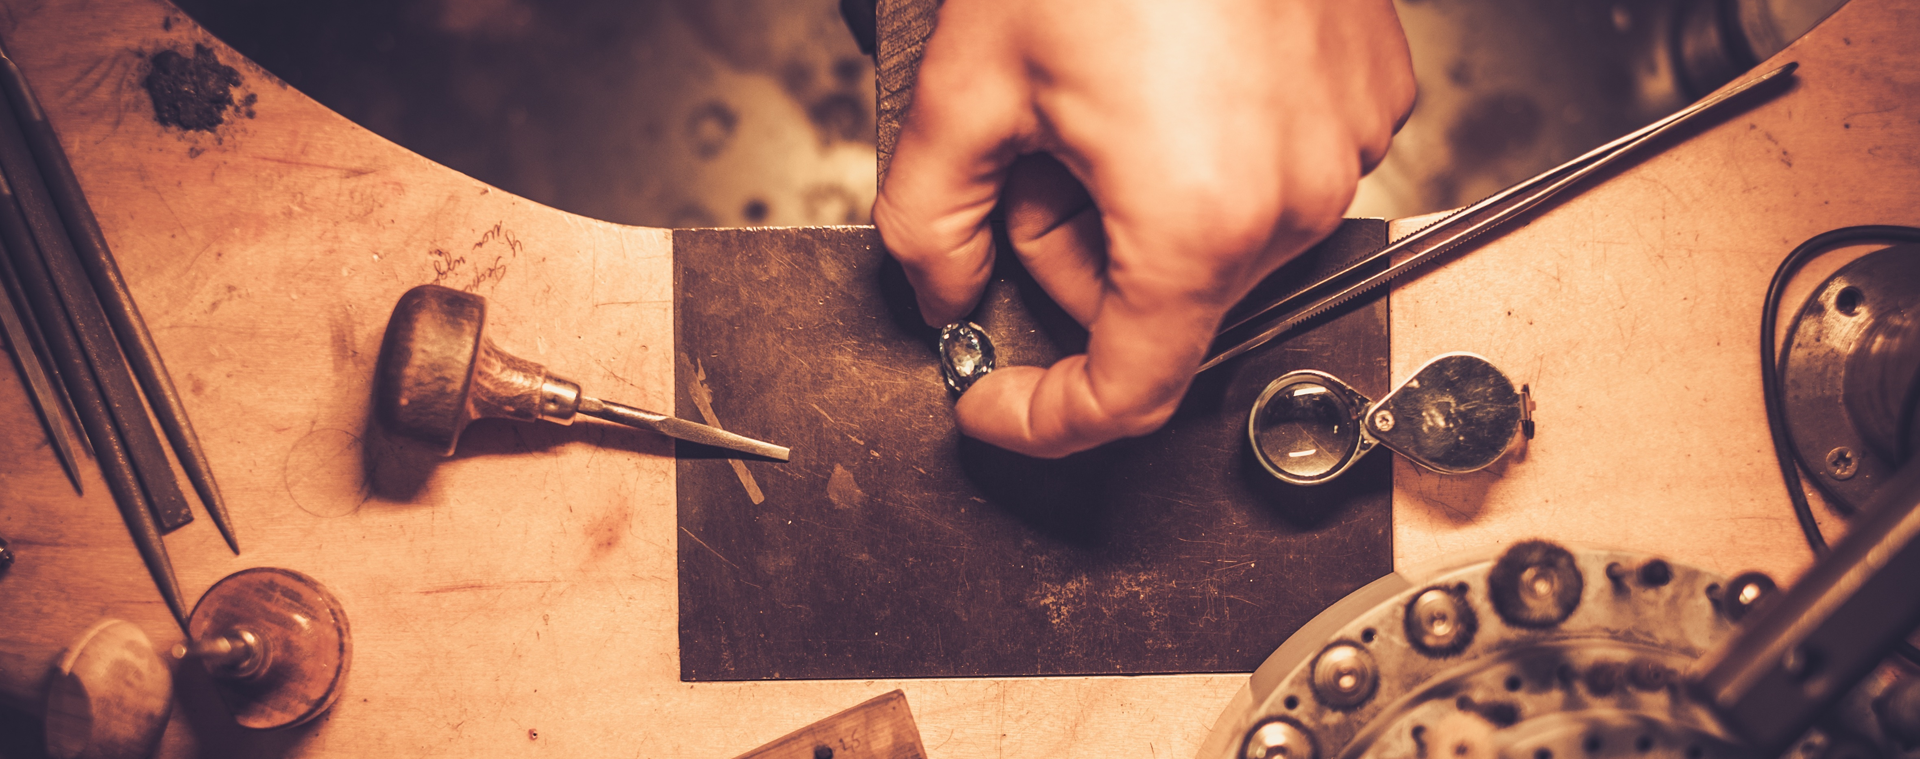 Heirloom + Antique Restorations | Jewelry Repair